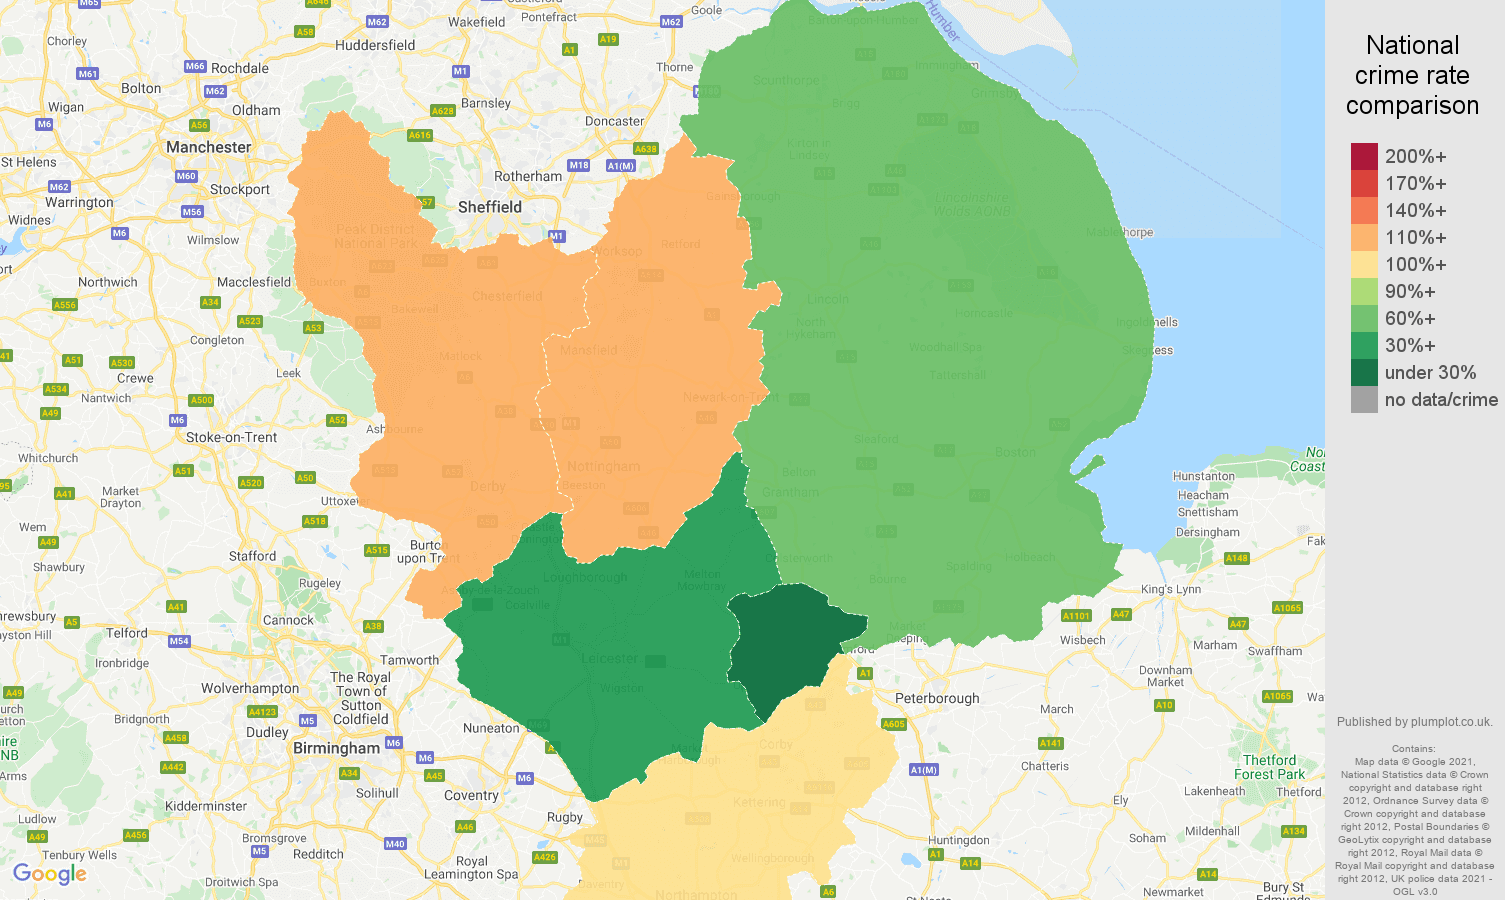 East Midlands antisocial behaviour crime rate comparison map